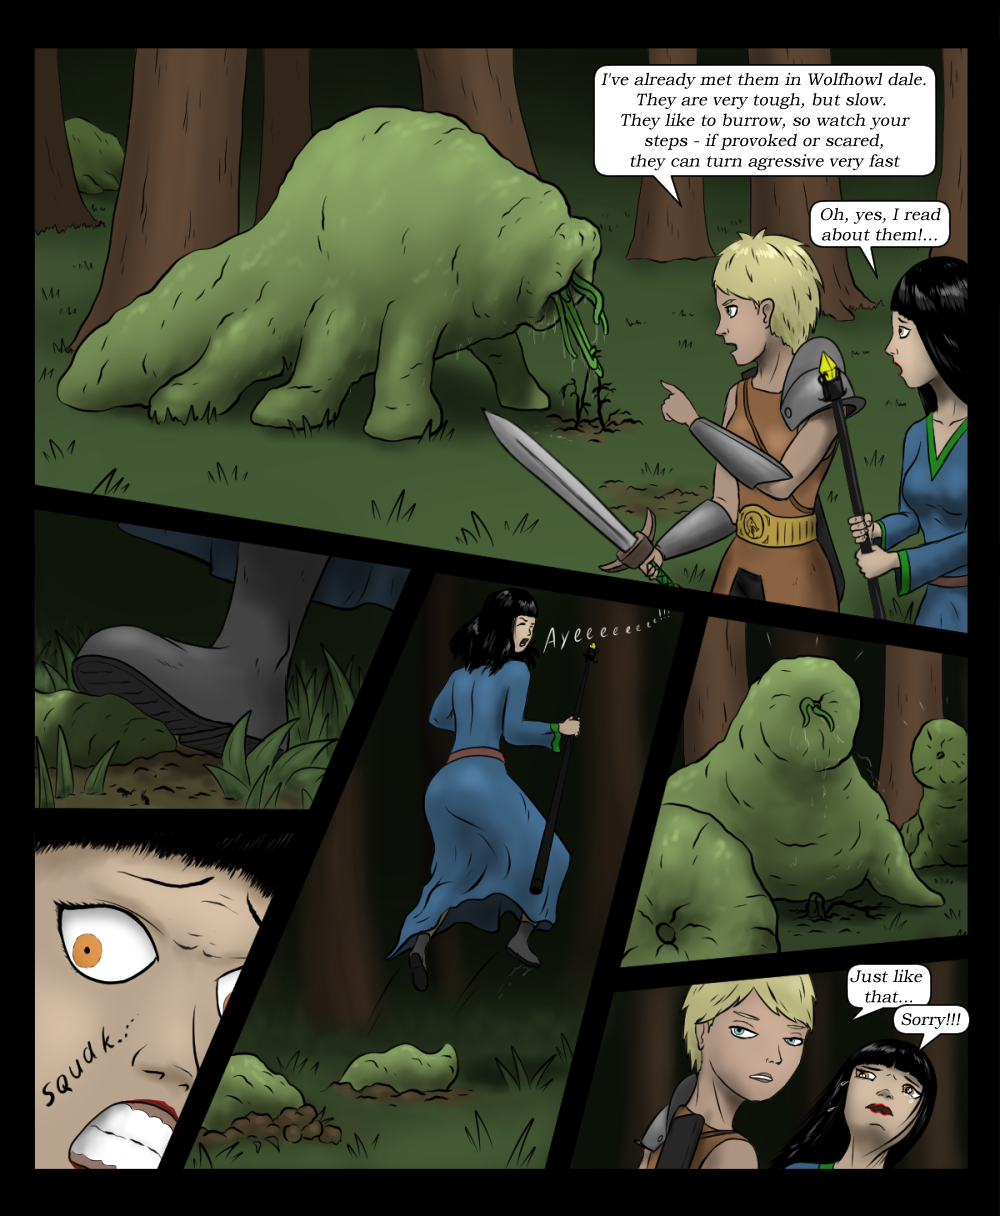 Page 38 - Easily spookable giants